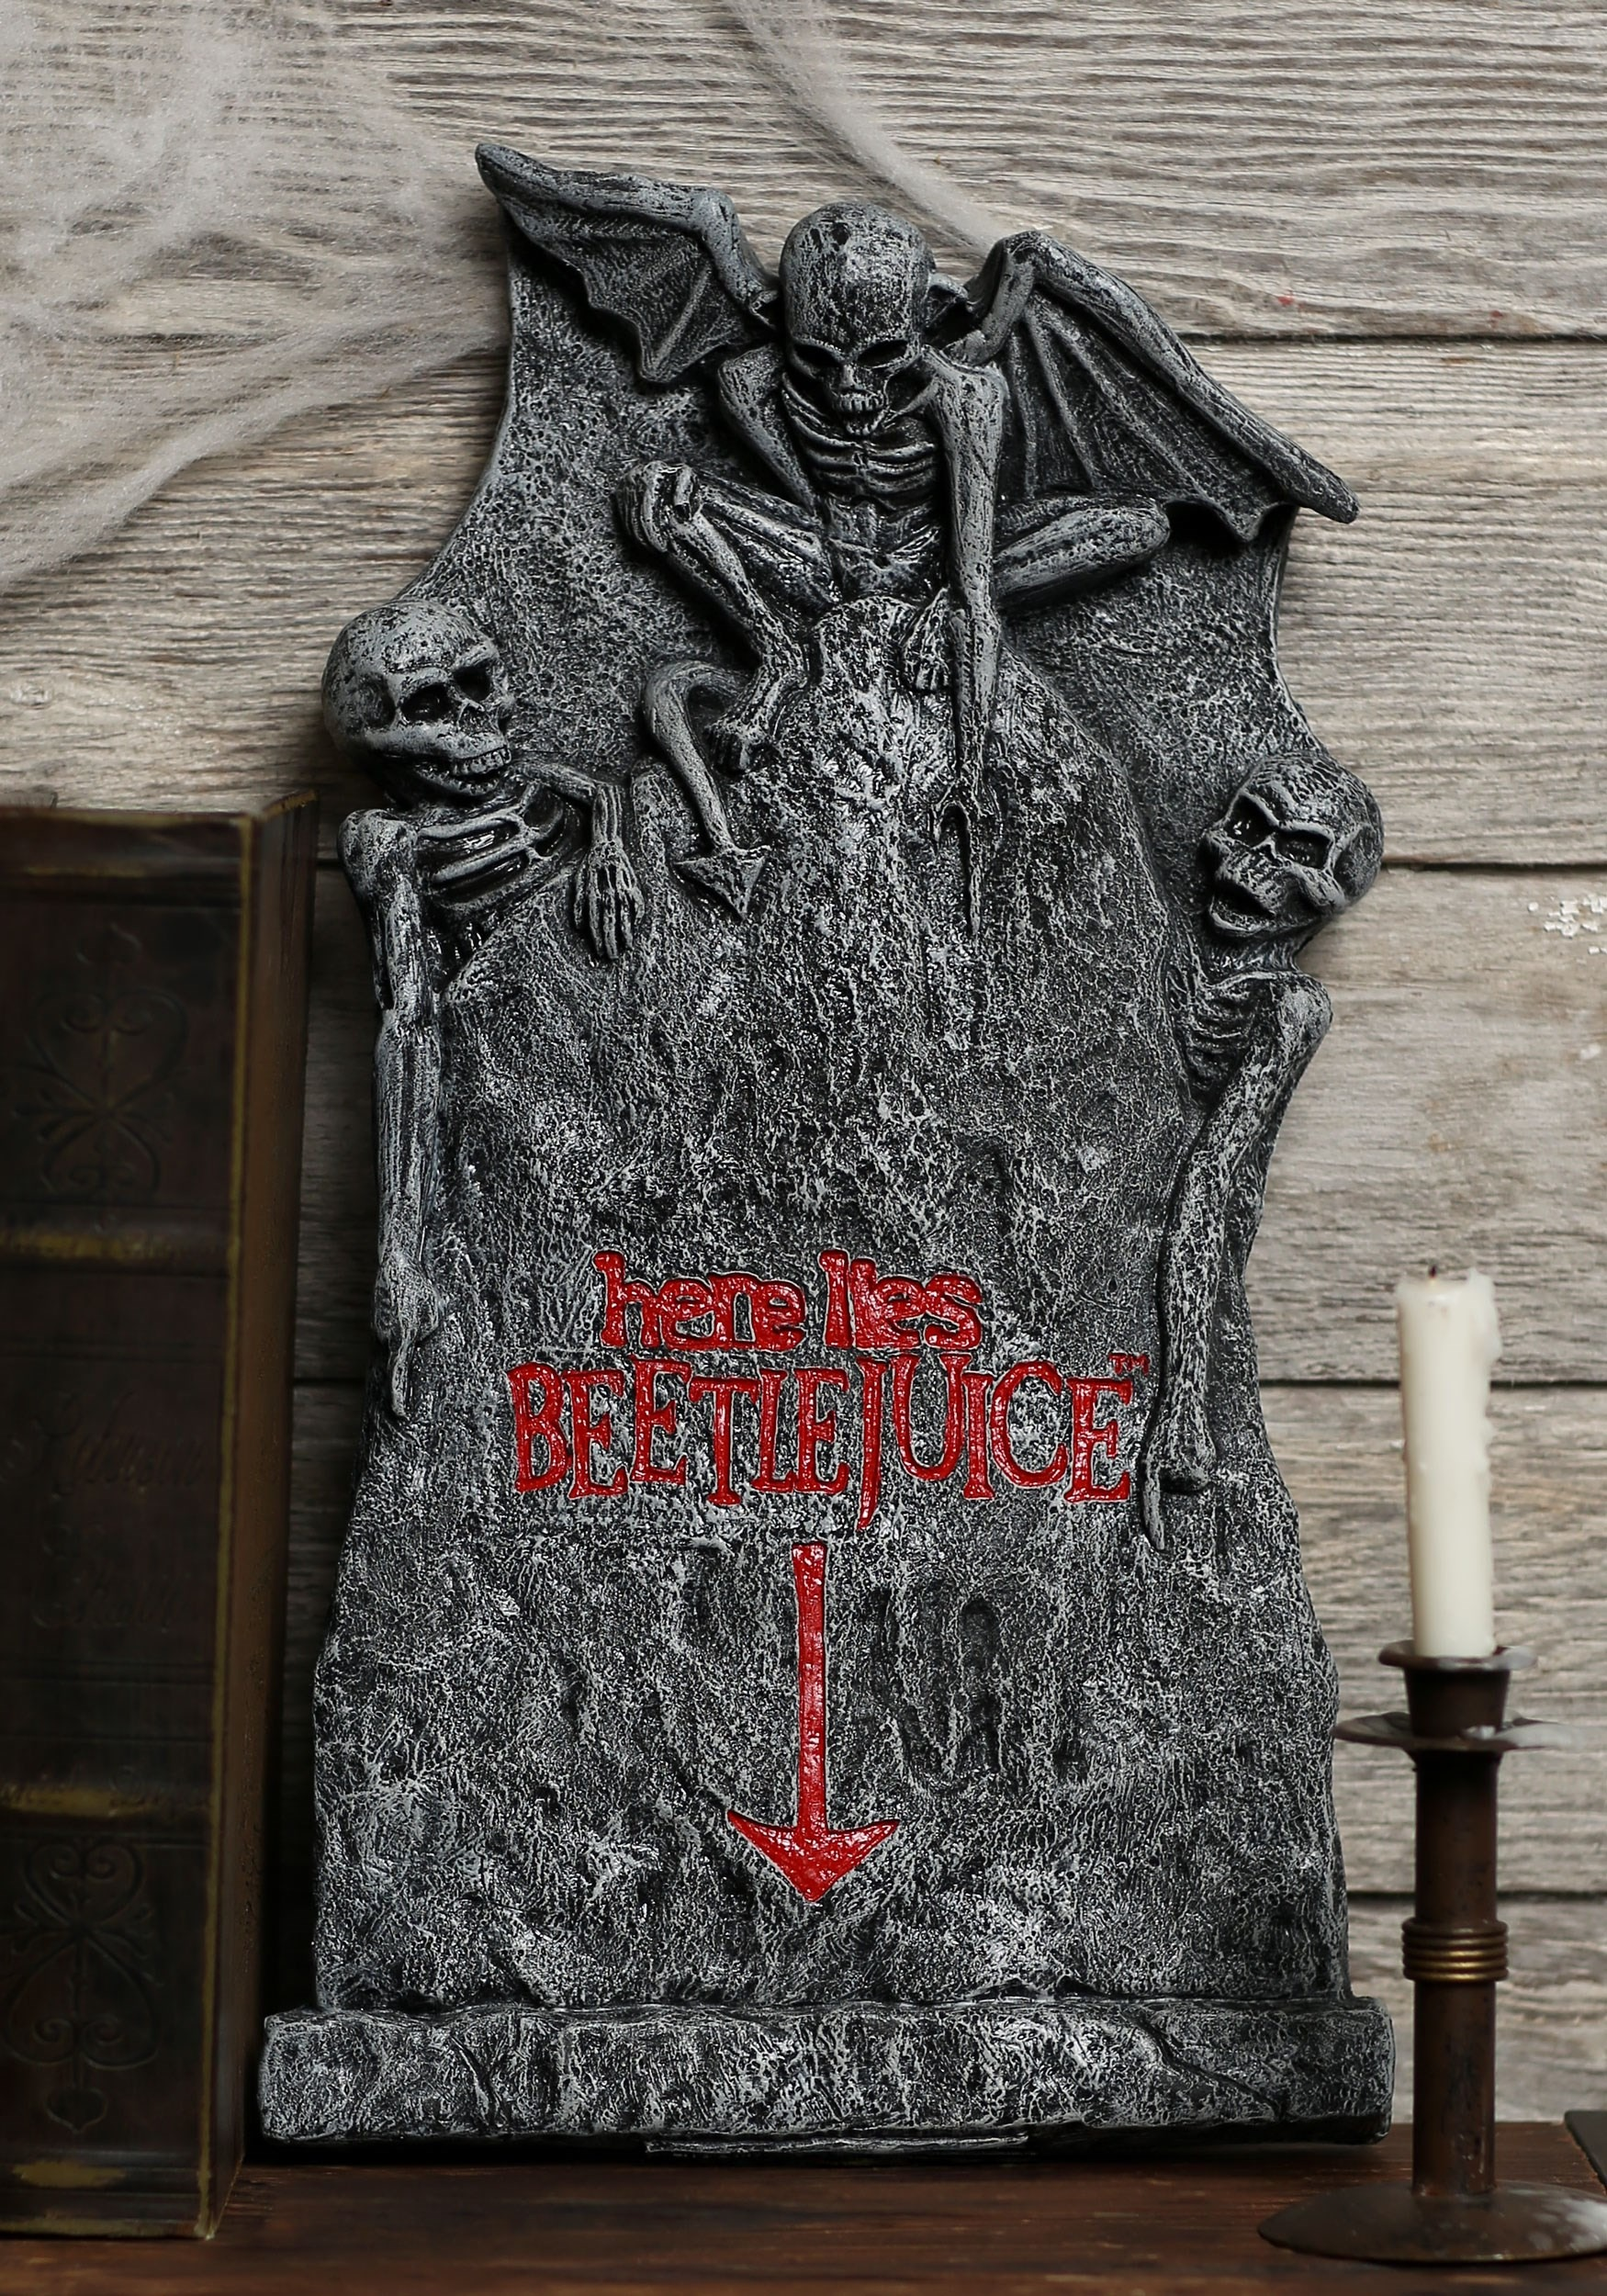 999 more details beetlejuice small tombstone